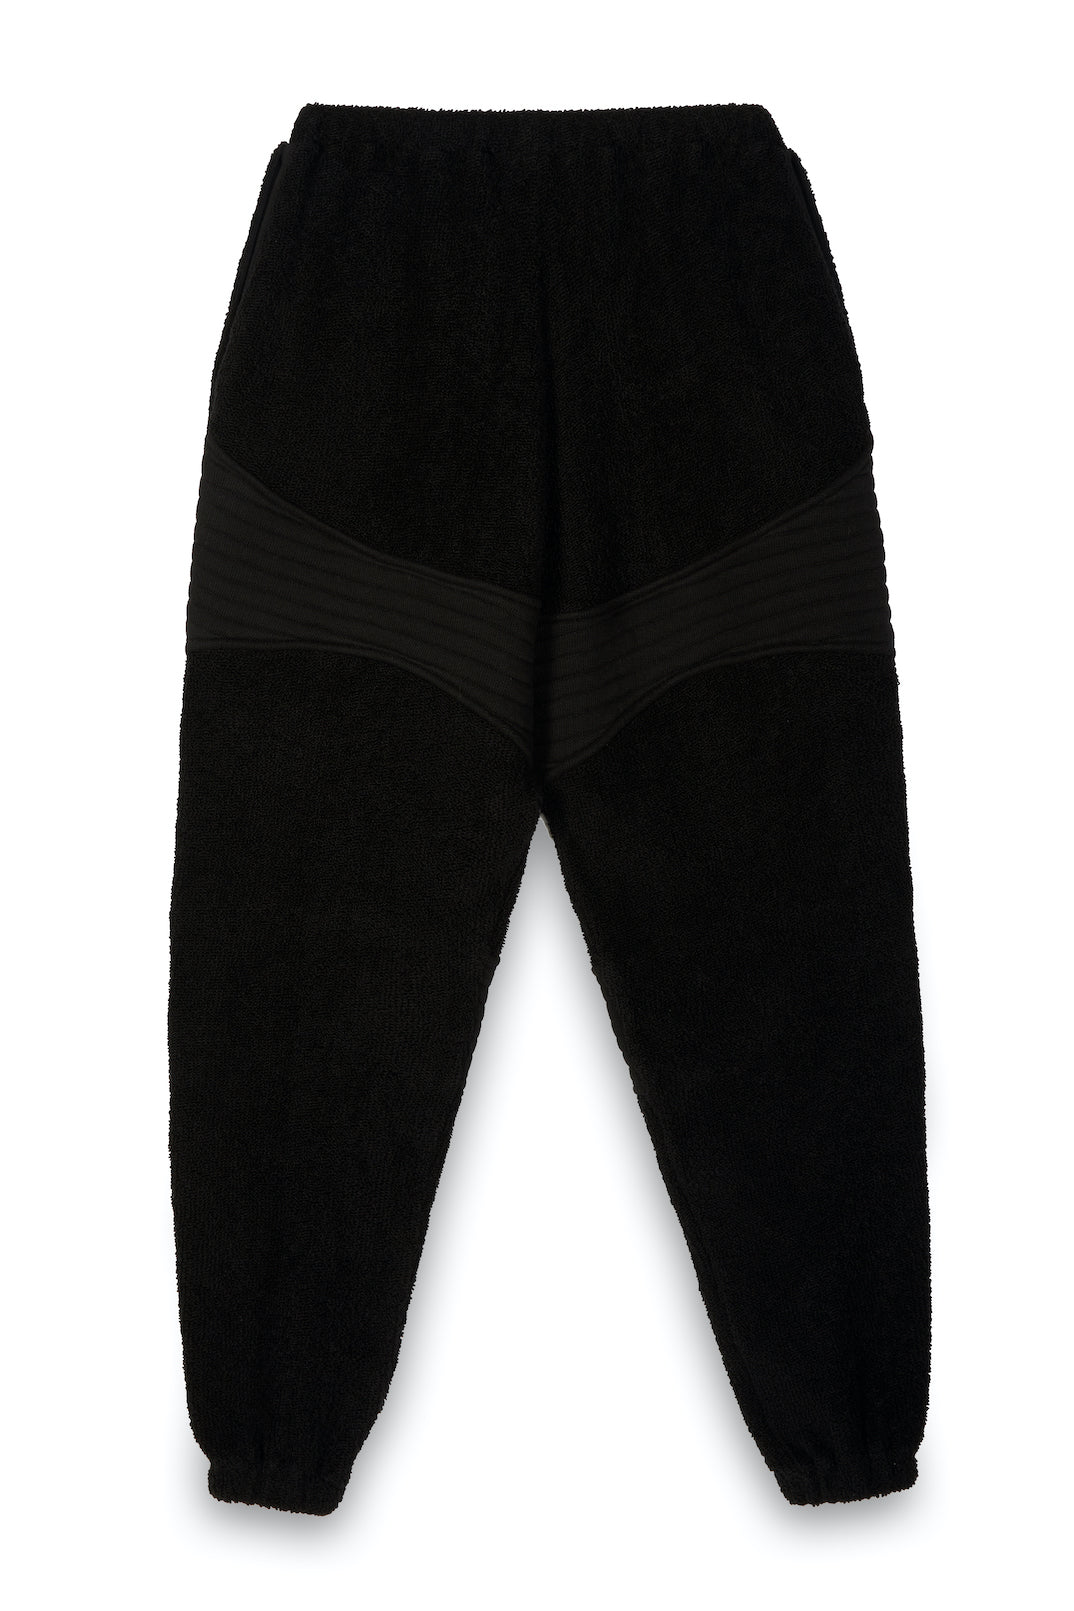 TONIKteddy Slouch Panelled Joggers in Pitch Black